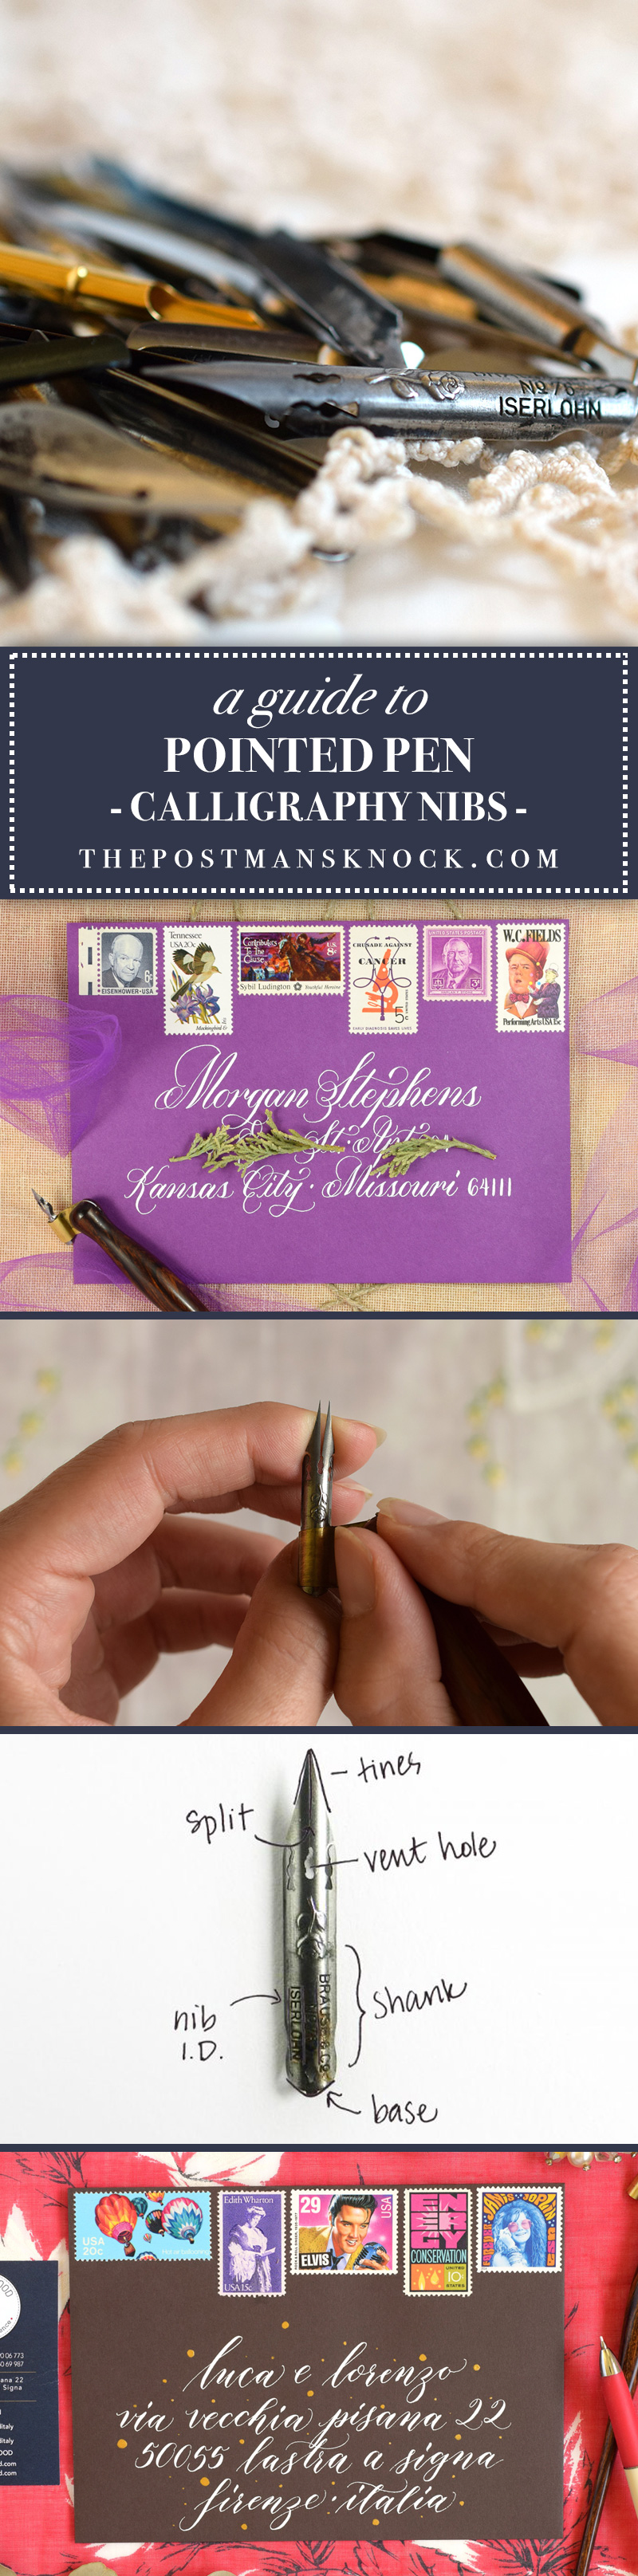 A Guide to Pointed Pen Calligraphy Nibs | The Postman's Knock